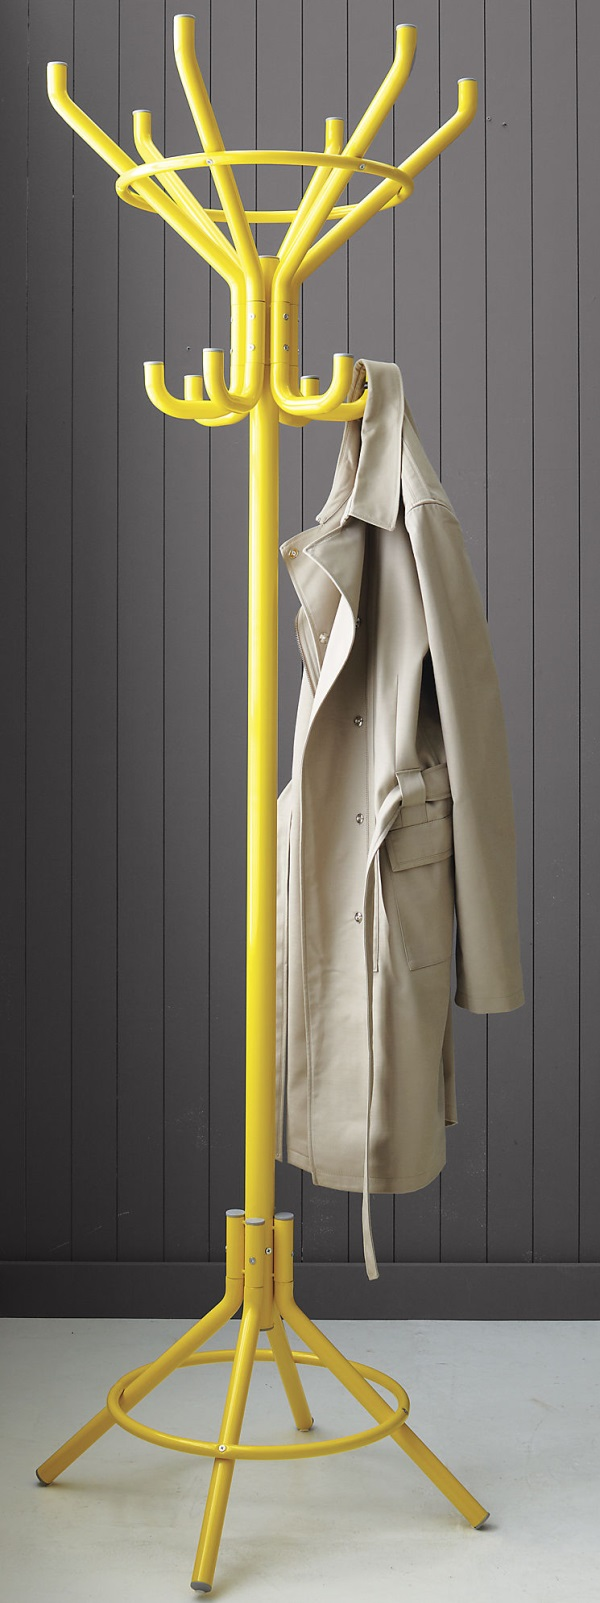 Colorful yellow coat rack